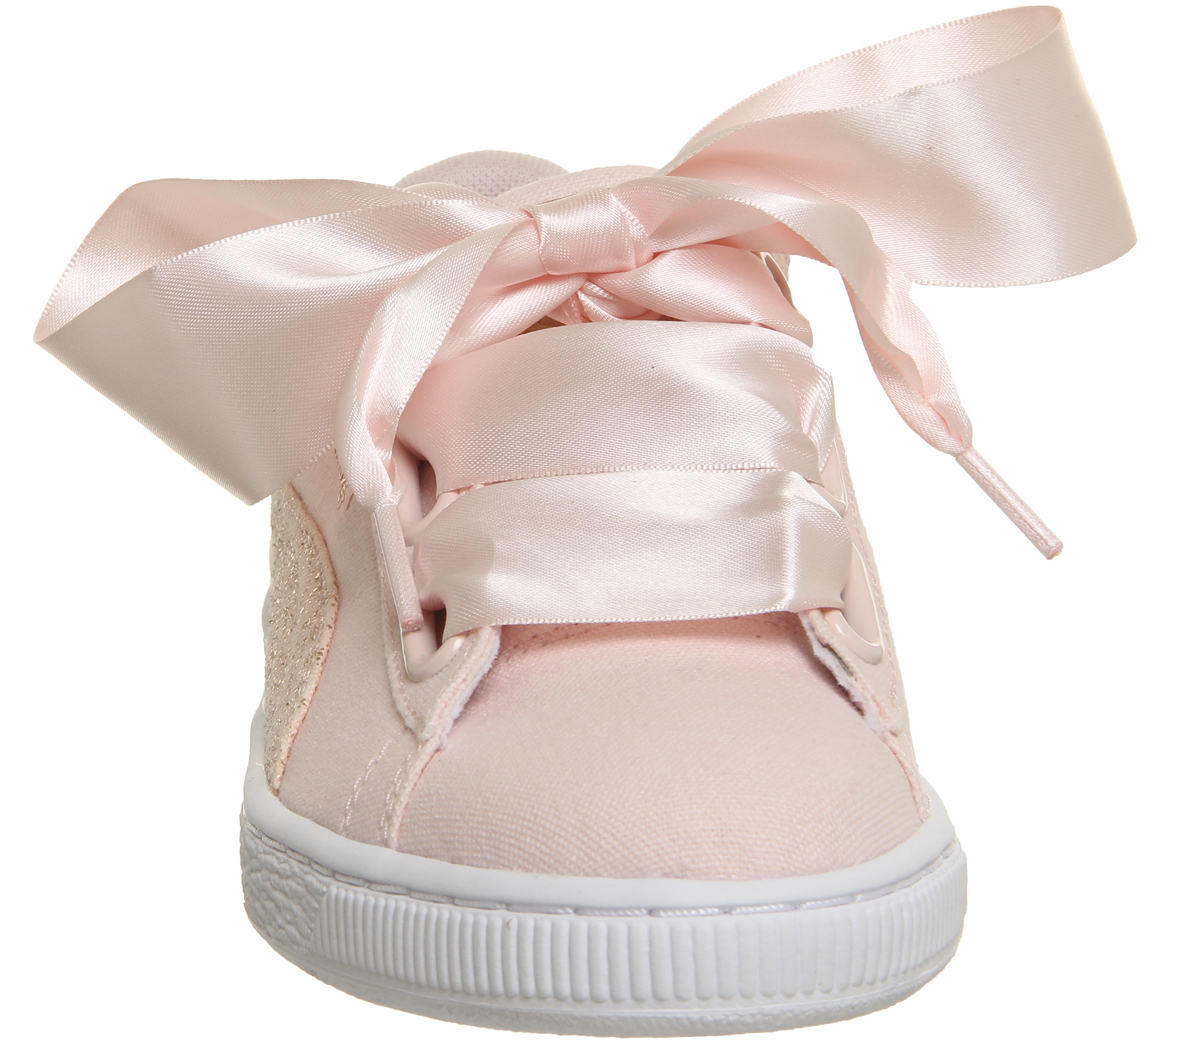 a9afe2f6c4194a Sentinel Womens Puma Basket Heart Canvas Trainers Pearl Puma White Rose  Gold Trainers Sho